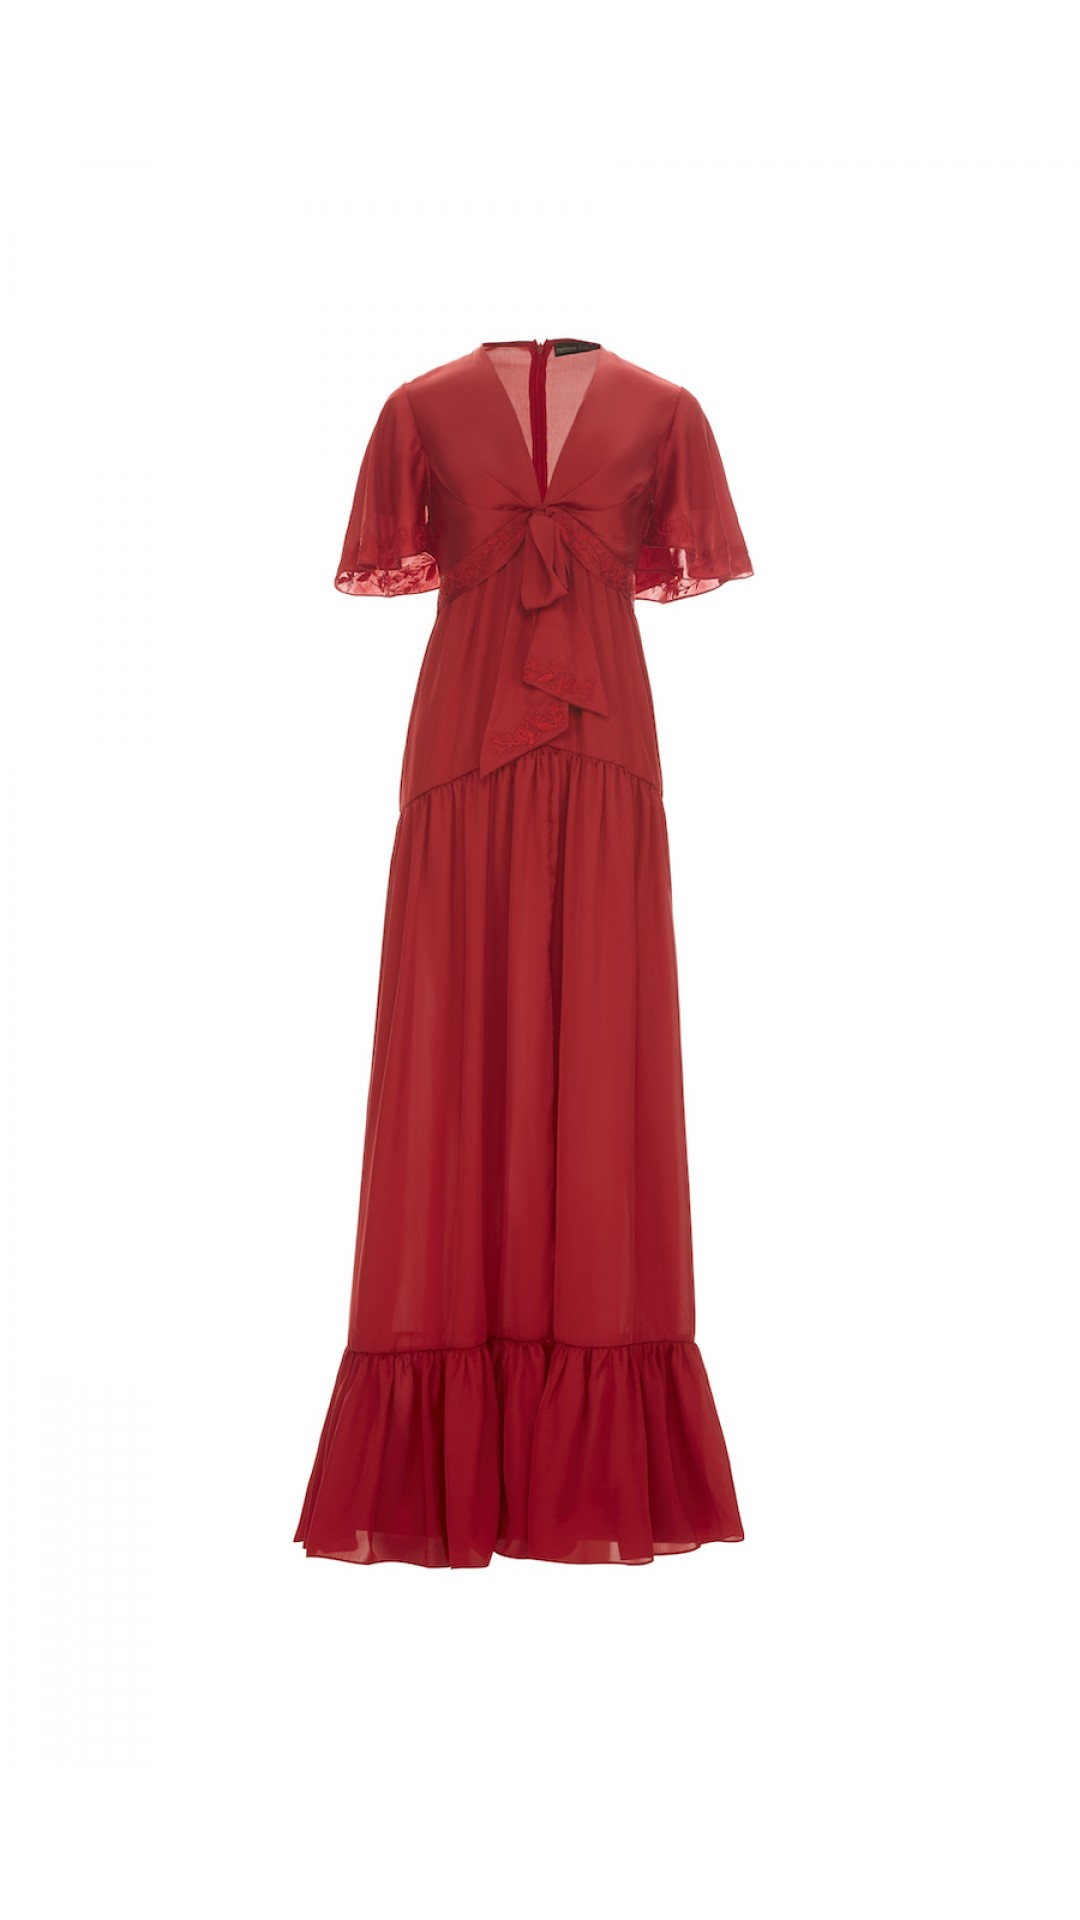 EMBROIDERED RED NIGHT DRESS